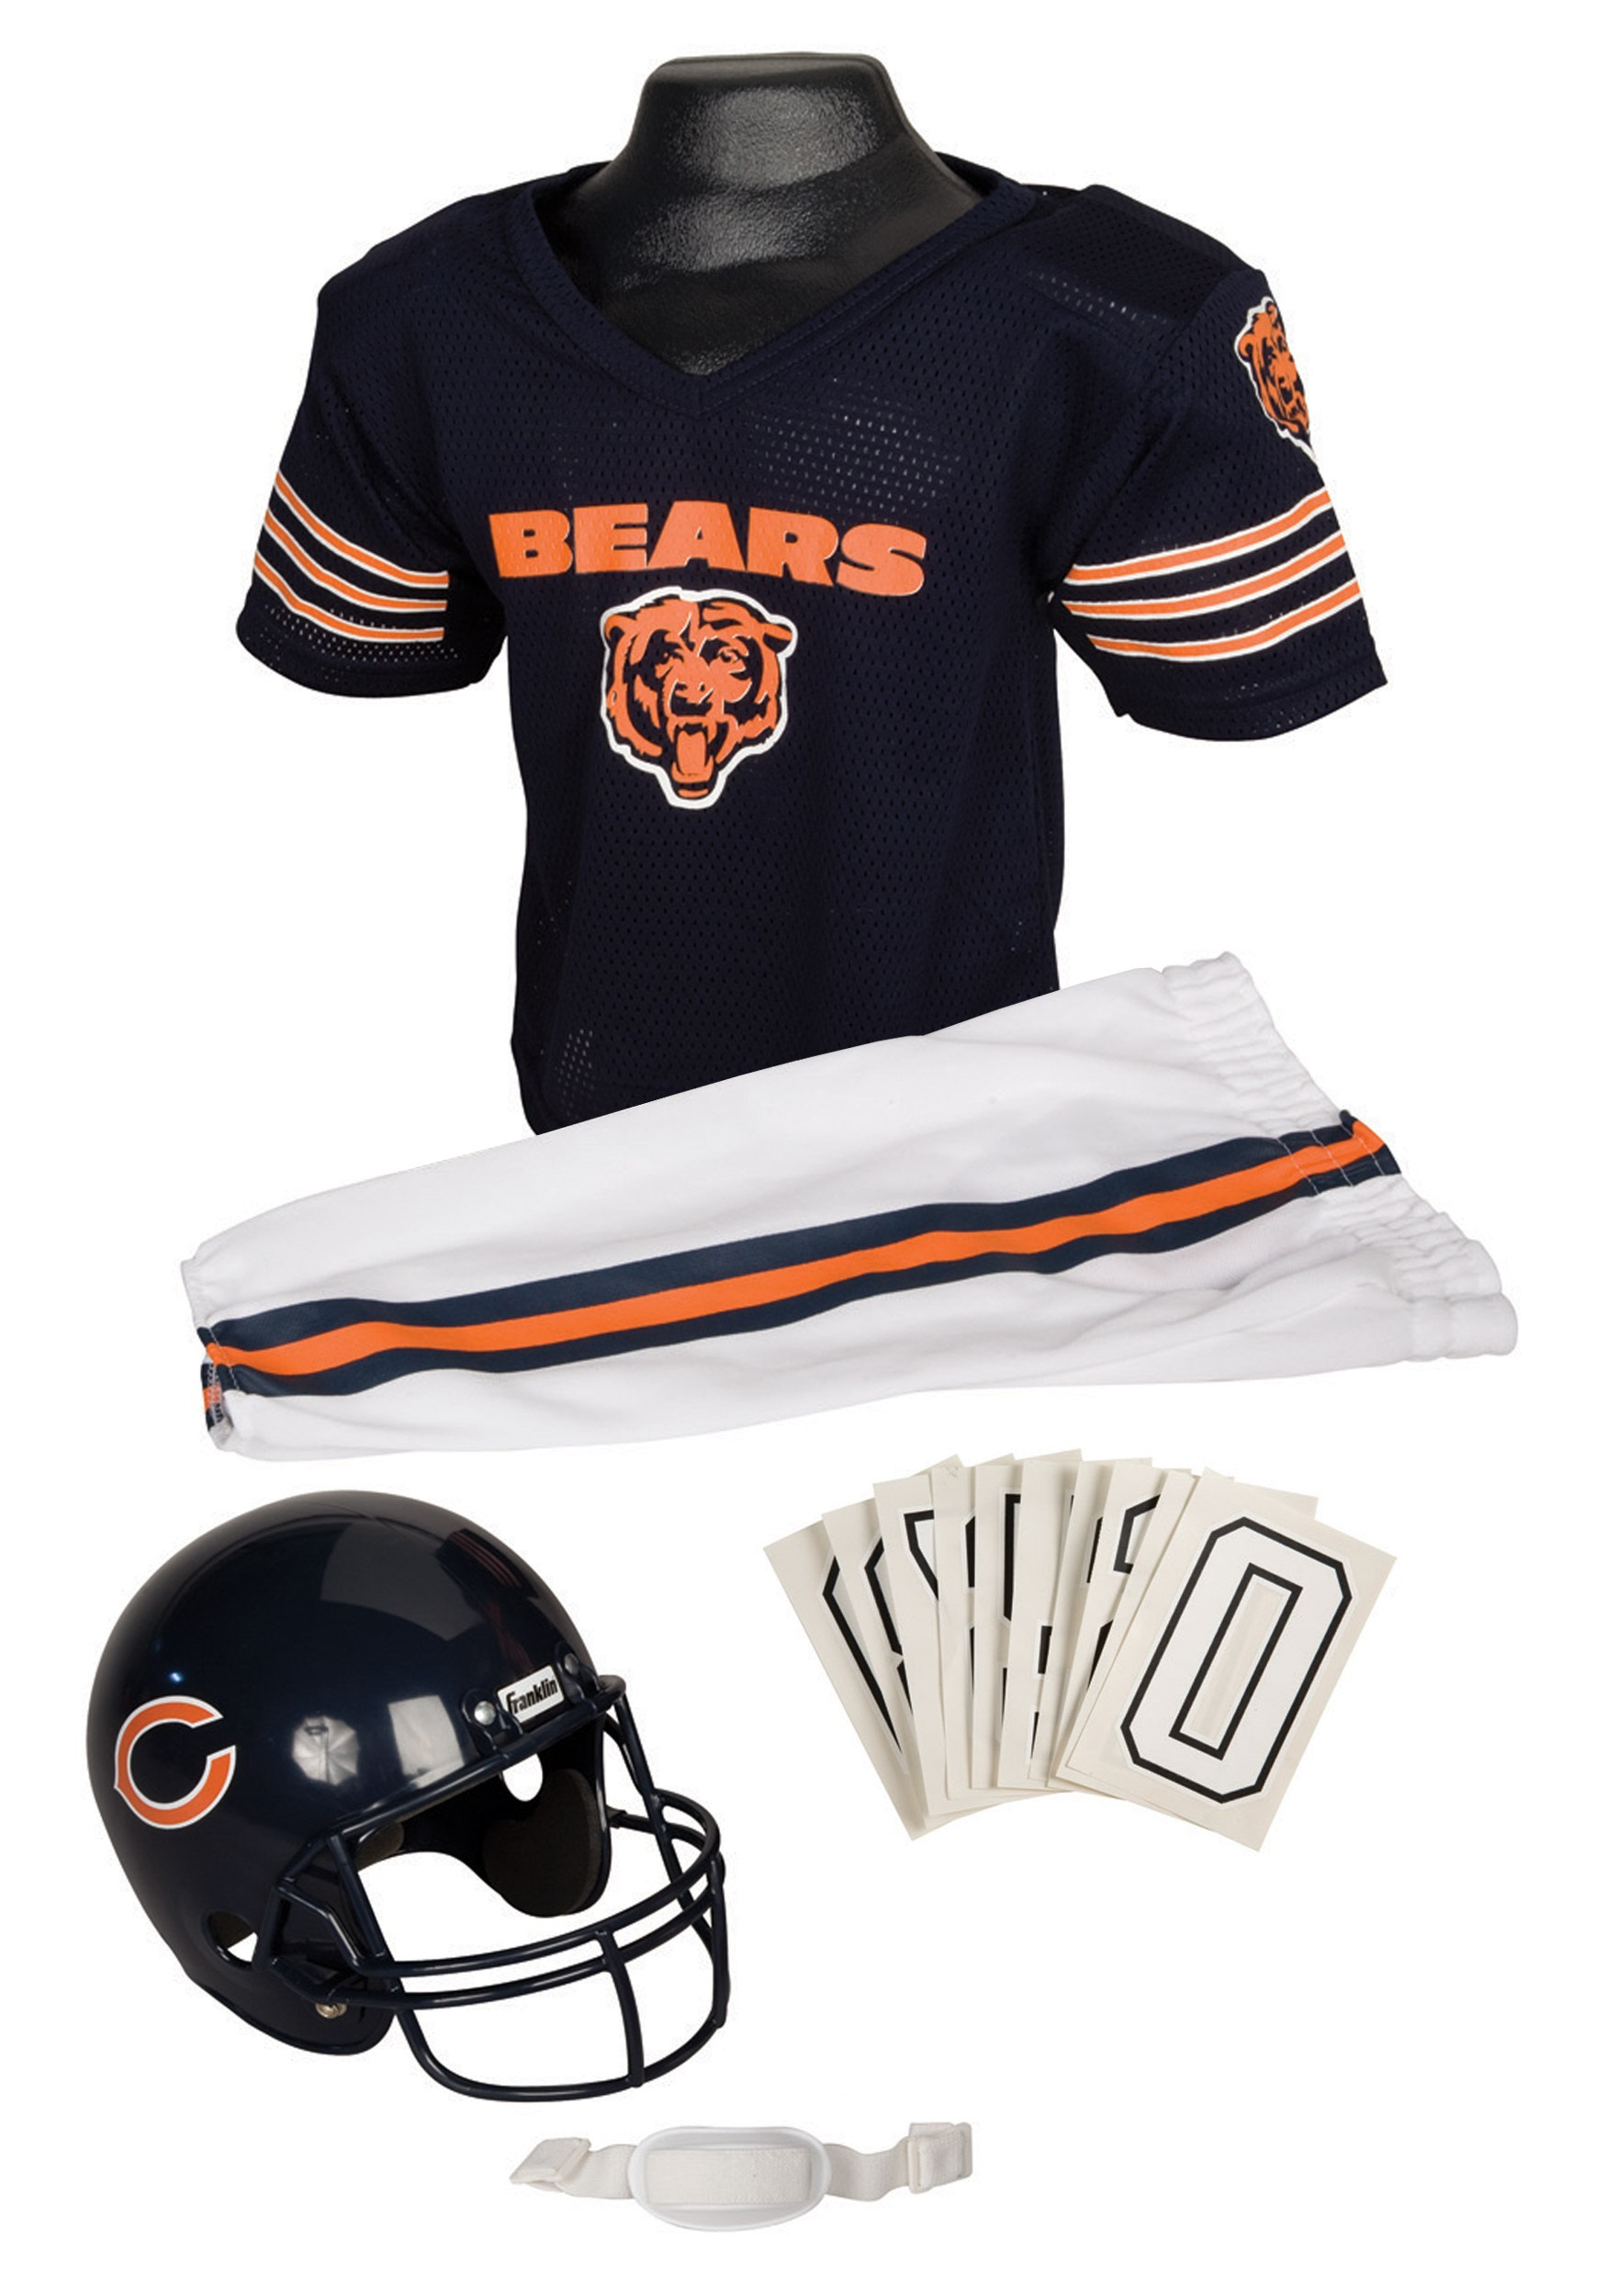 71daab5f86331 Kids NFL Chicago Bears Uniform Set. PinterestTwitterFacebook · NFL Chicago  Bears Costume